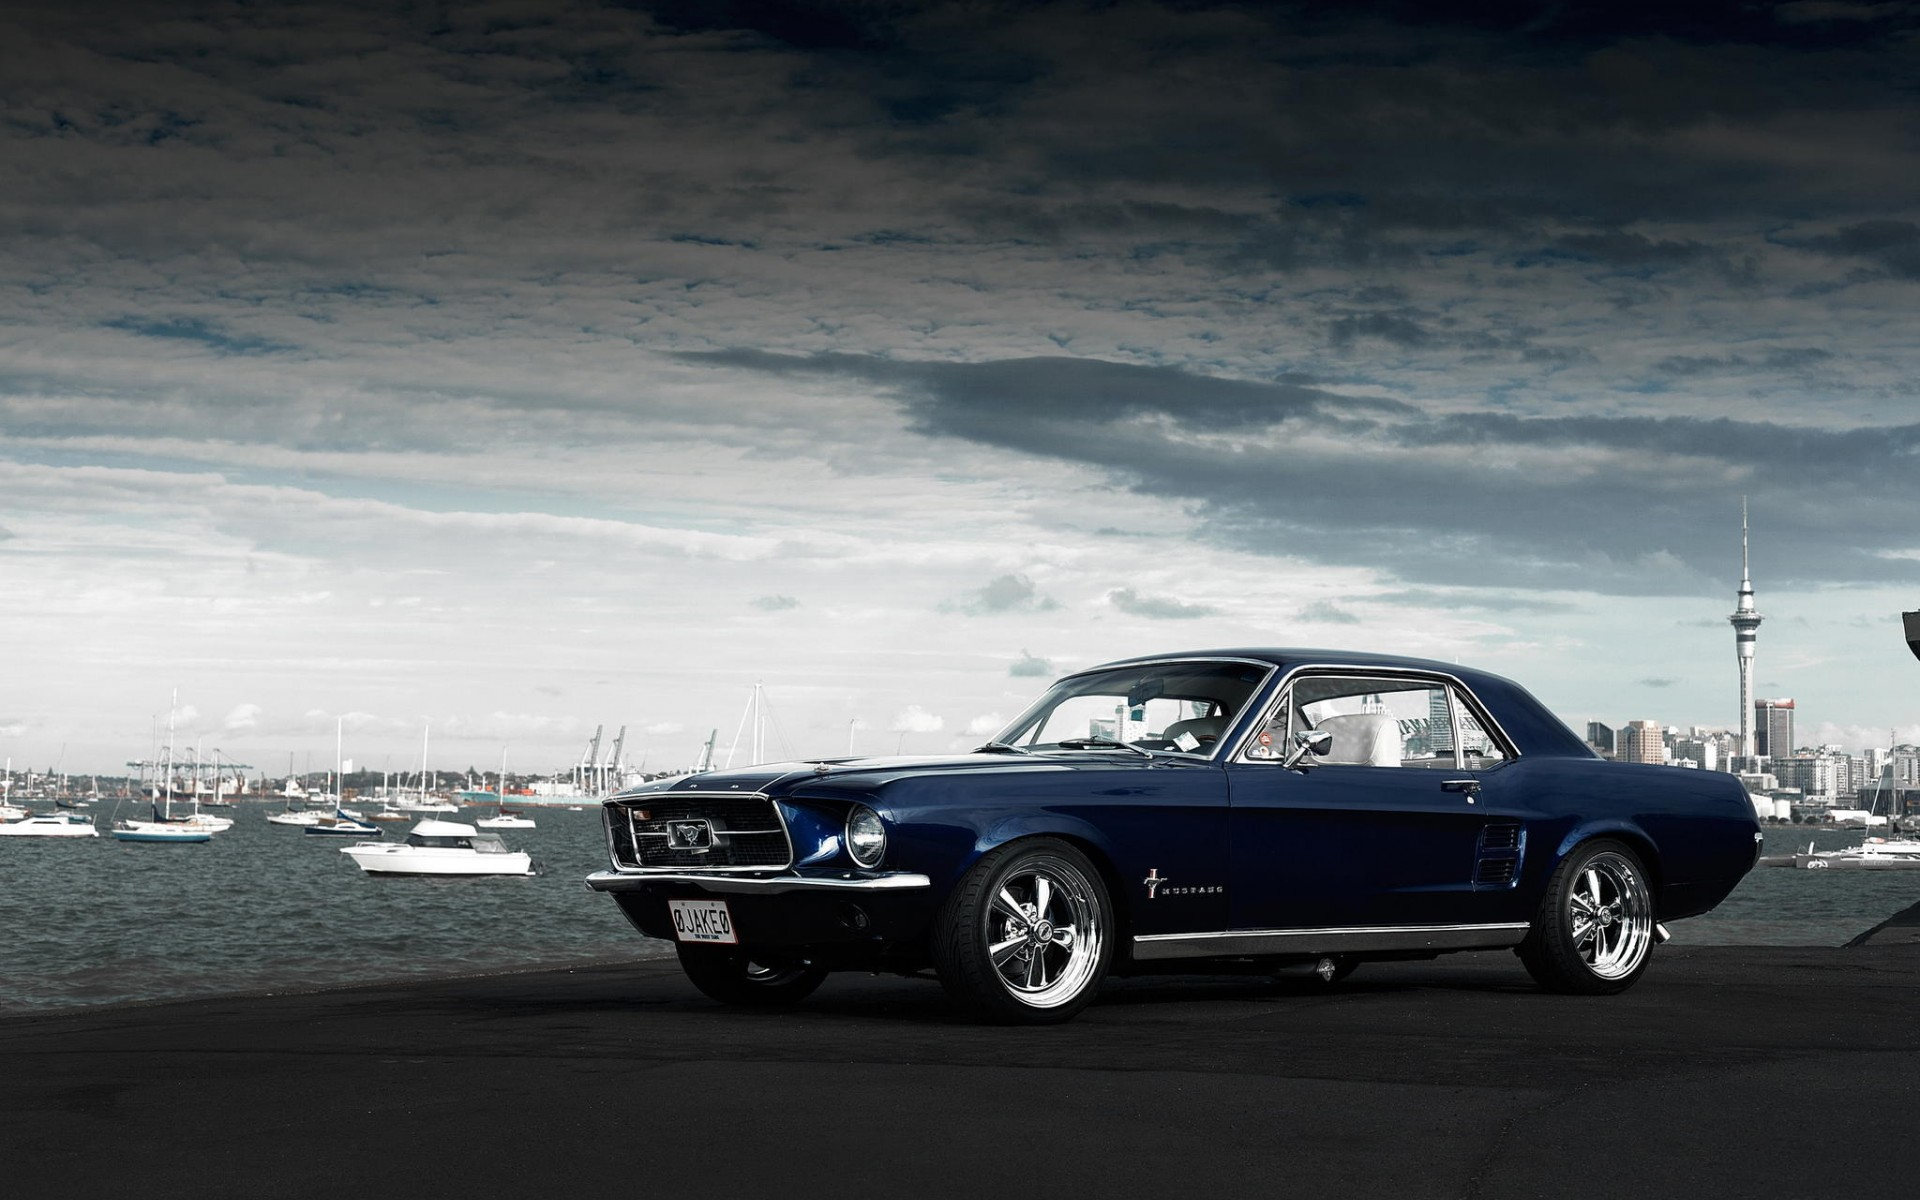 Ford Mustang Full HD Duvarka\u011f\u0131d\u0131 and Arka plan  1920x1200  ID:542538